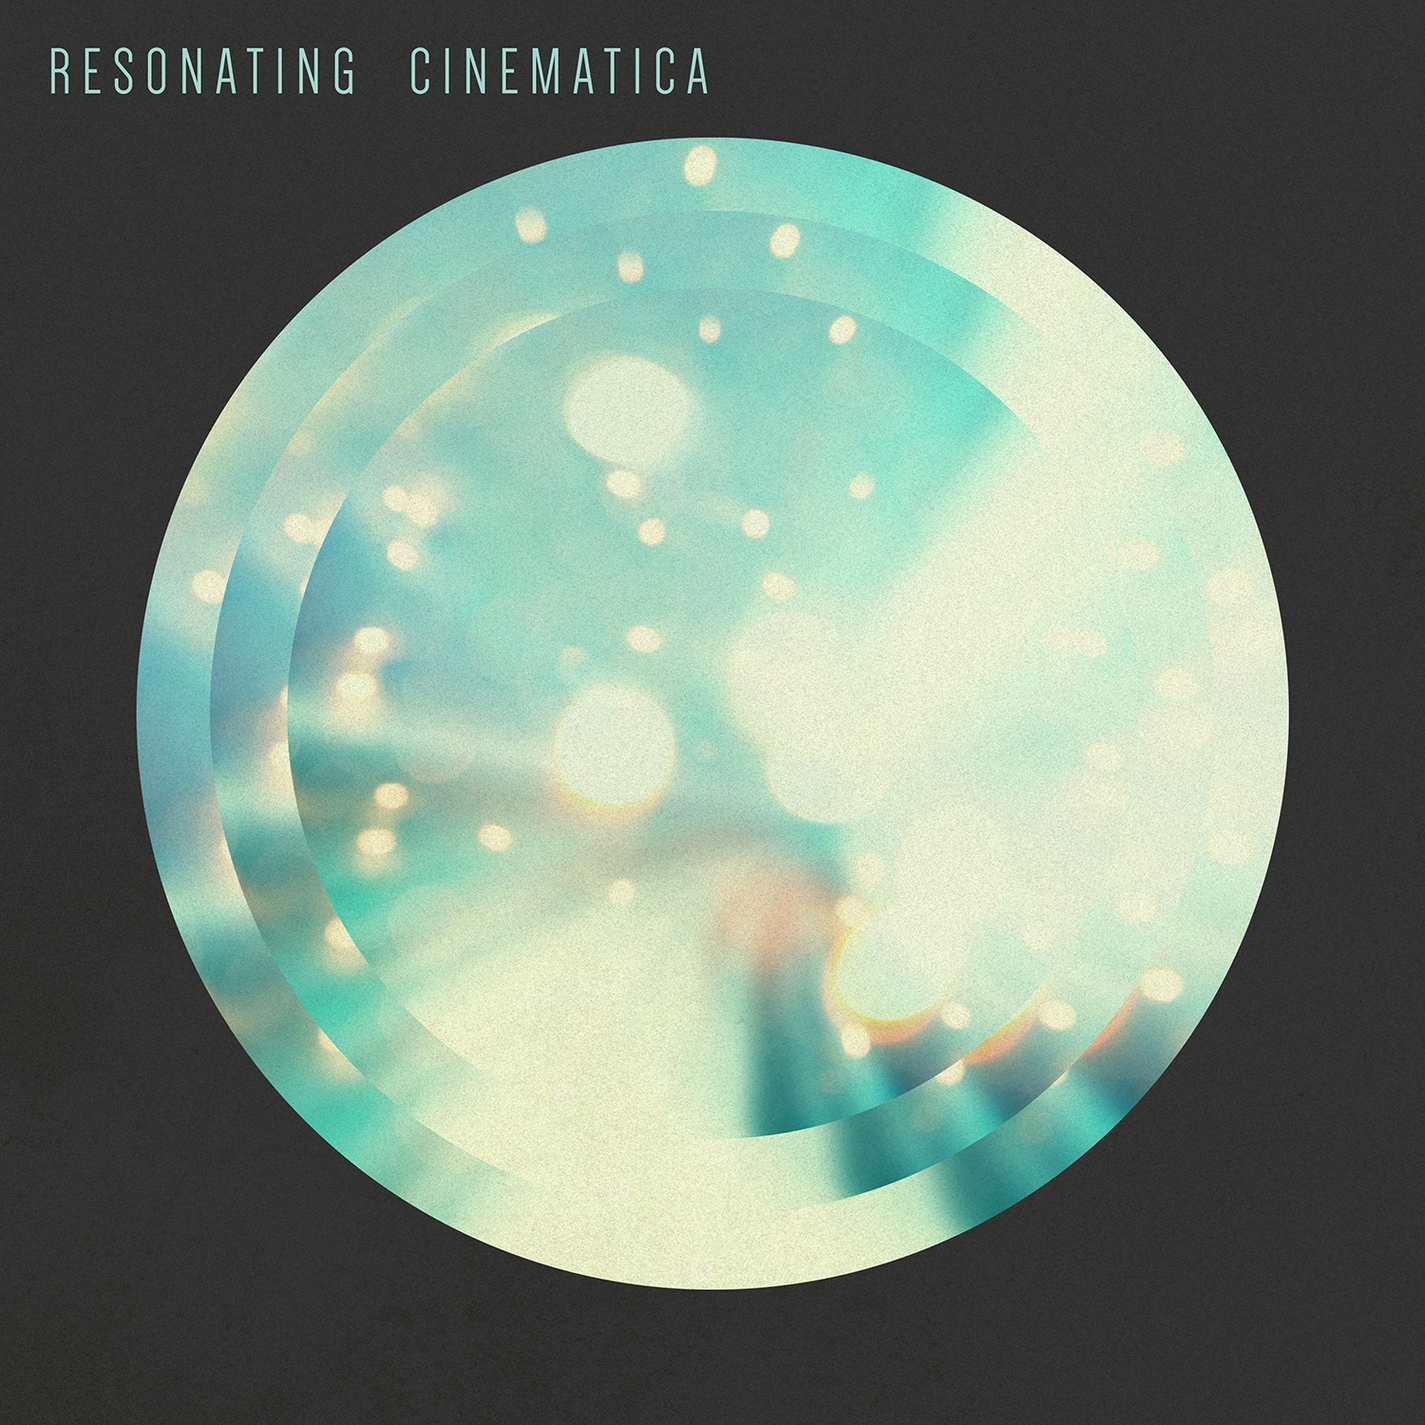 Resonating Cinematica